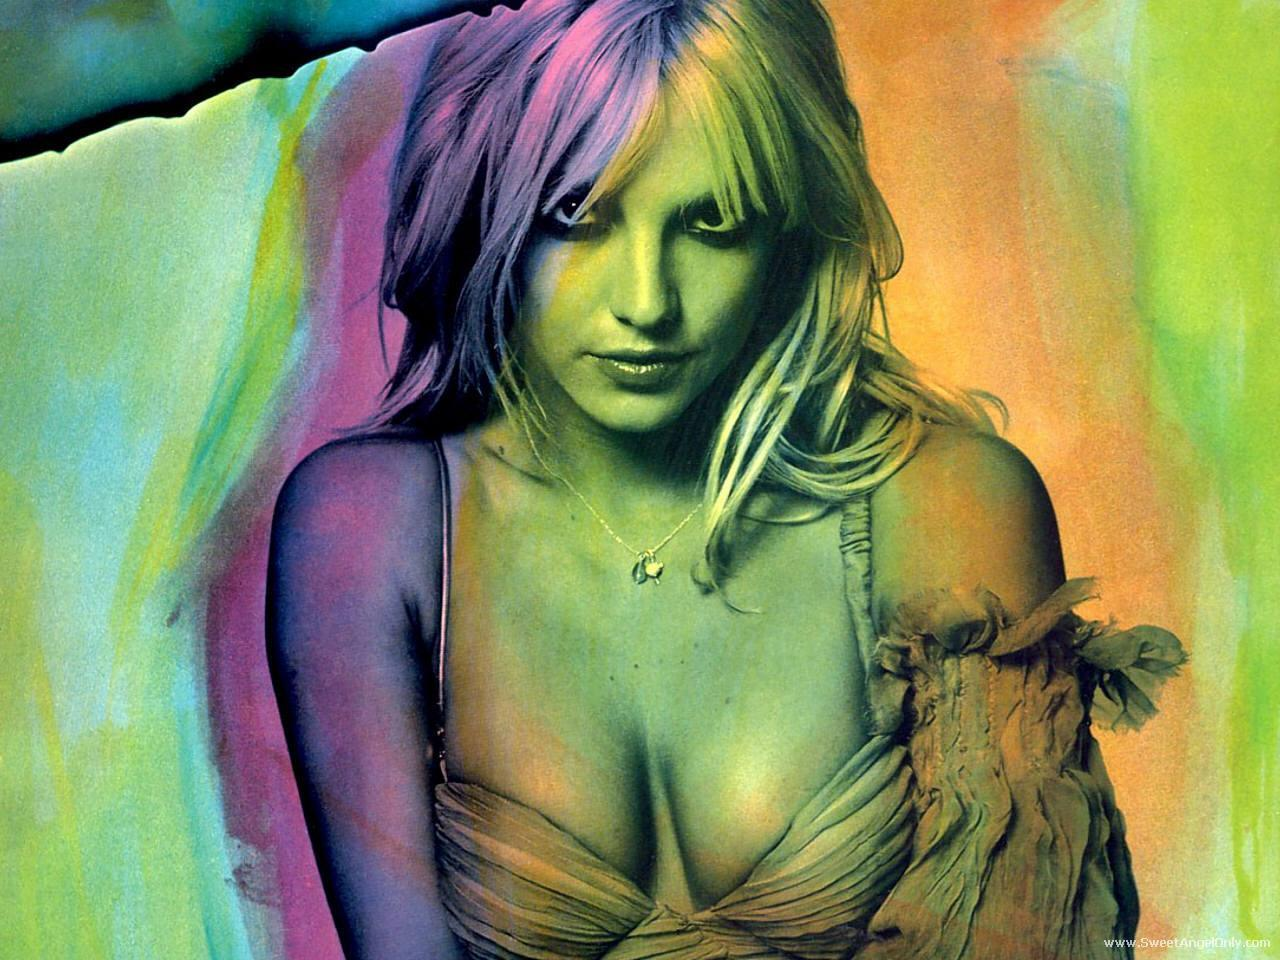 http://1.bp.blogspot.com/-yV7CdonmMBQ/TtjSVgzQwQI/AAAAAAAABpk/GCEz4slADSk/s1600/britney_spears_pop_singer_photo_shoot_wallpaper-1600x1200-13.jpg